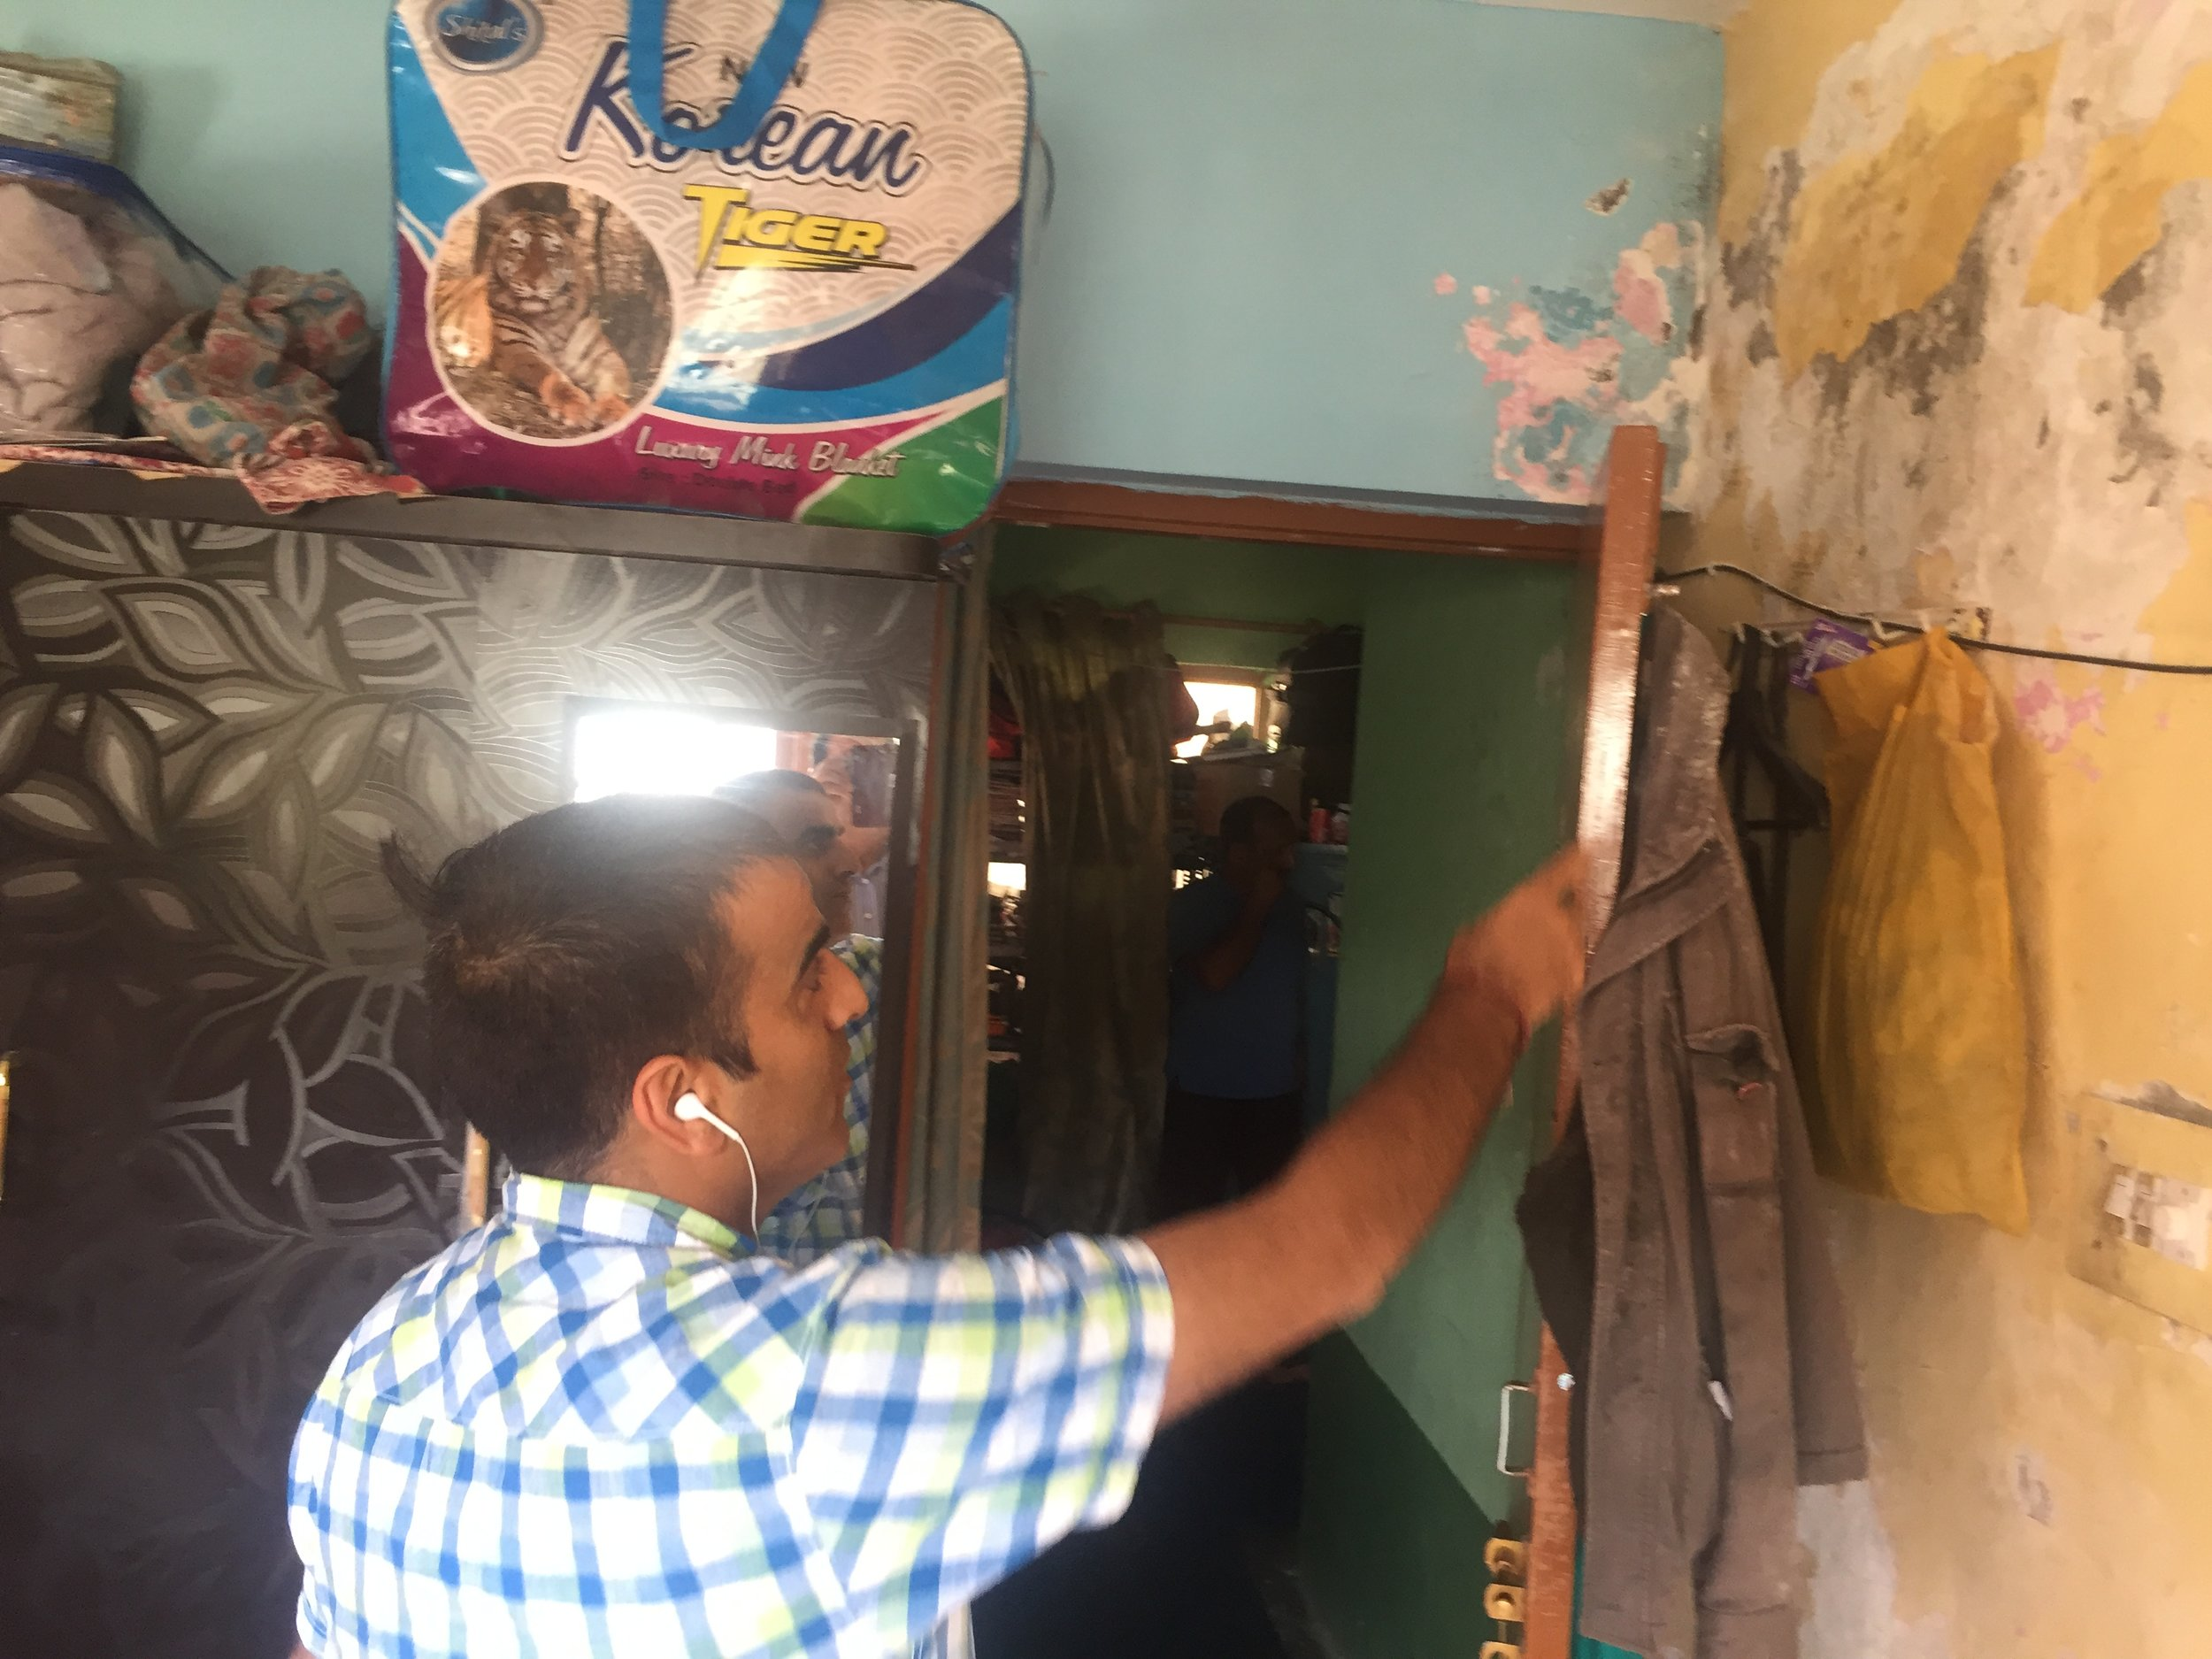 A Kashmiri Pandit showing how his walls are sopping wet due to leaking sewage pipes in his apartment in Budgam, Kashmir. Photo by Taha Zahoor.